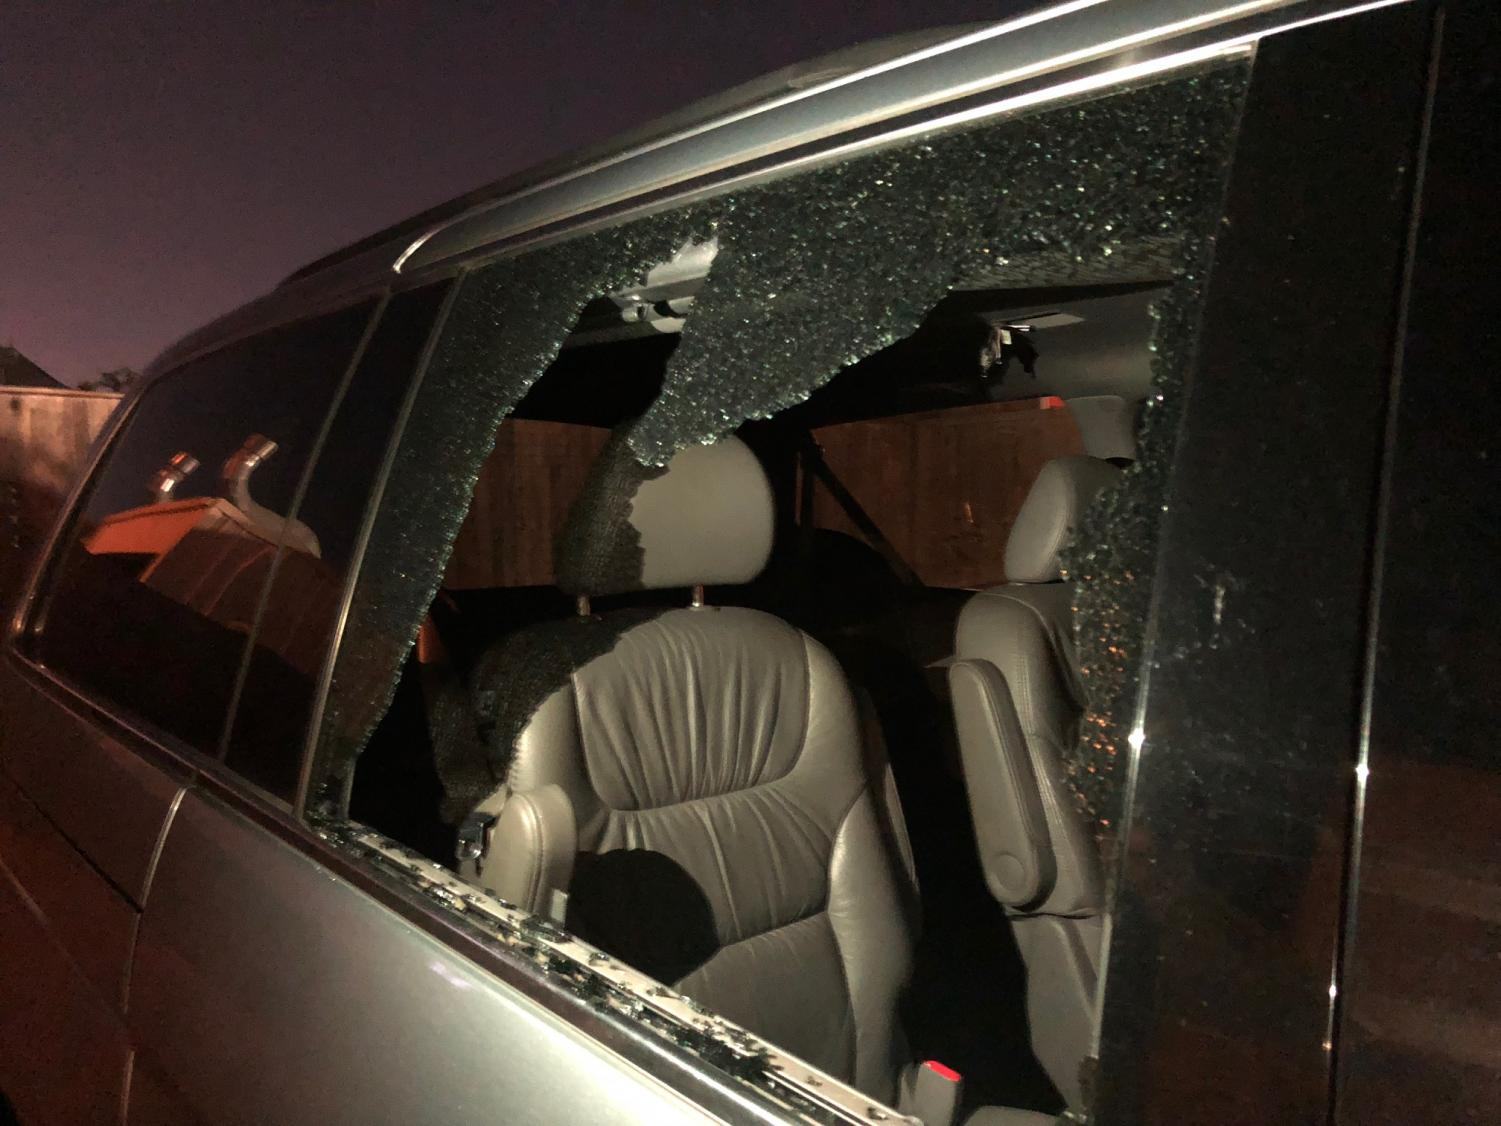 After breaking three car windows, the thief took four laptops but left the seniors' backpacks behind.